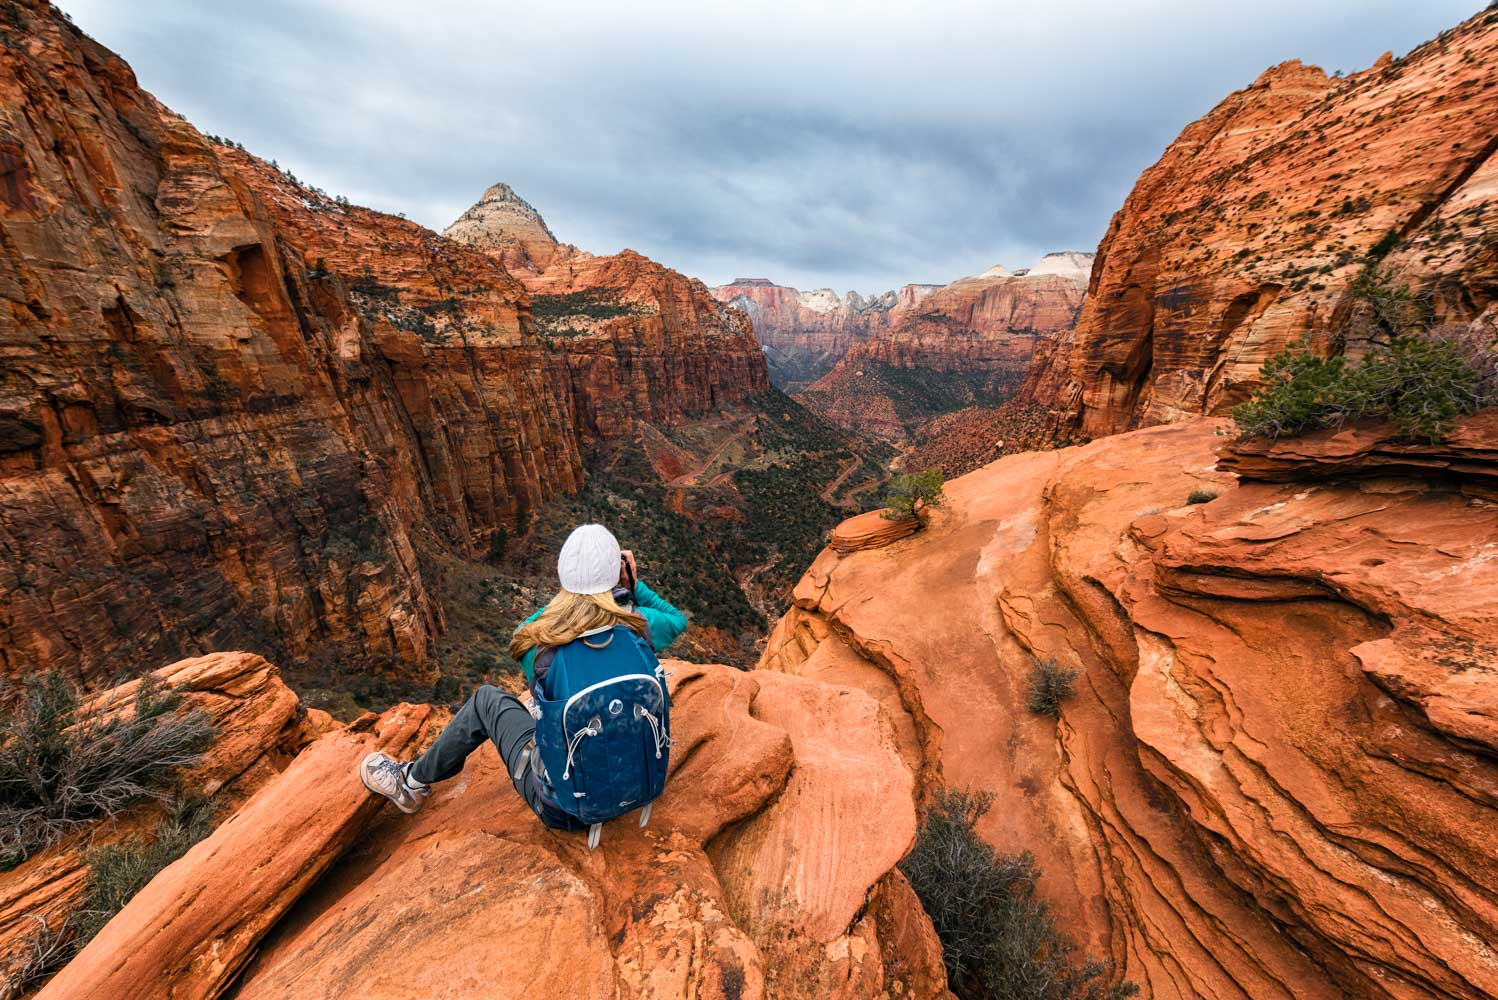 The view from the Canyon Overlook trail at Zion National Park;Nikon D810, 14–24mm, f/5.6, 1/500s, ISO 400